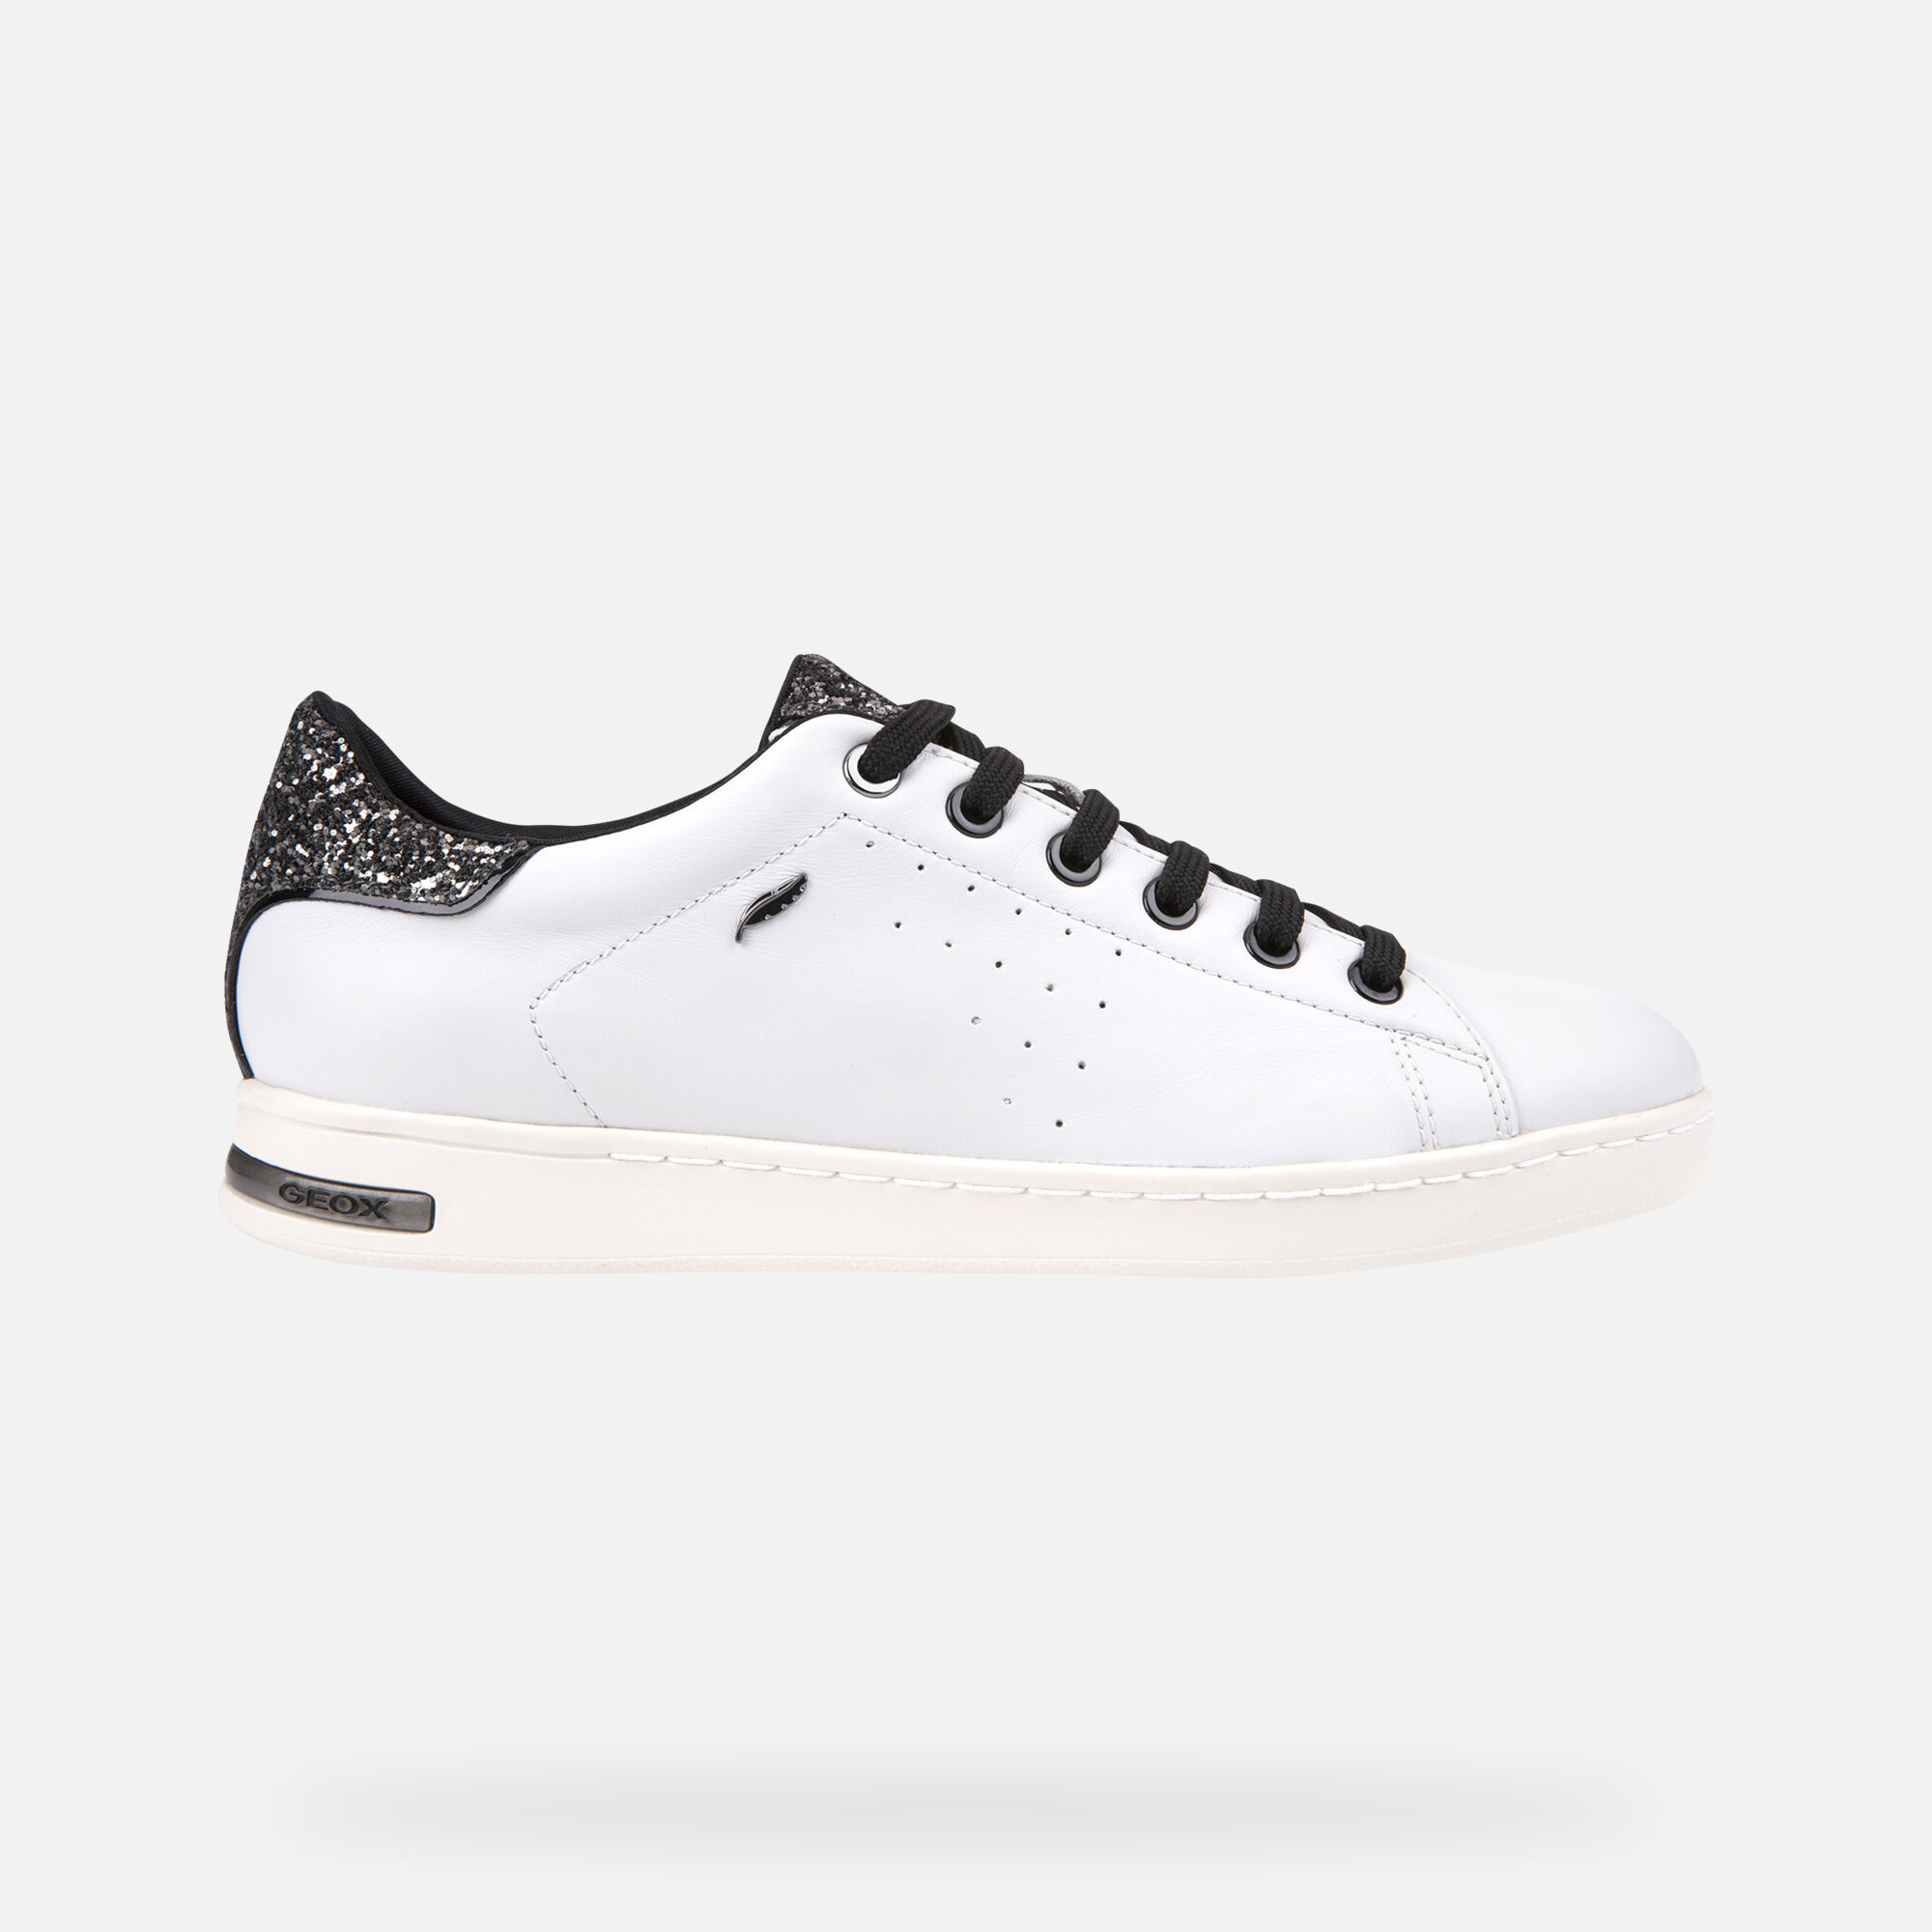 Geox JAYSEN Woman: White Sneakers | Geox ® Official Store